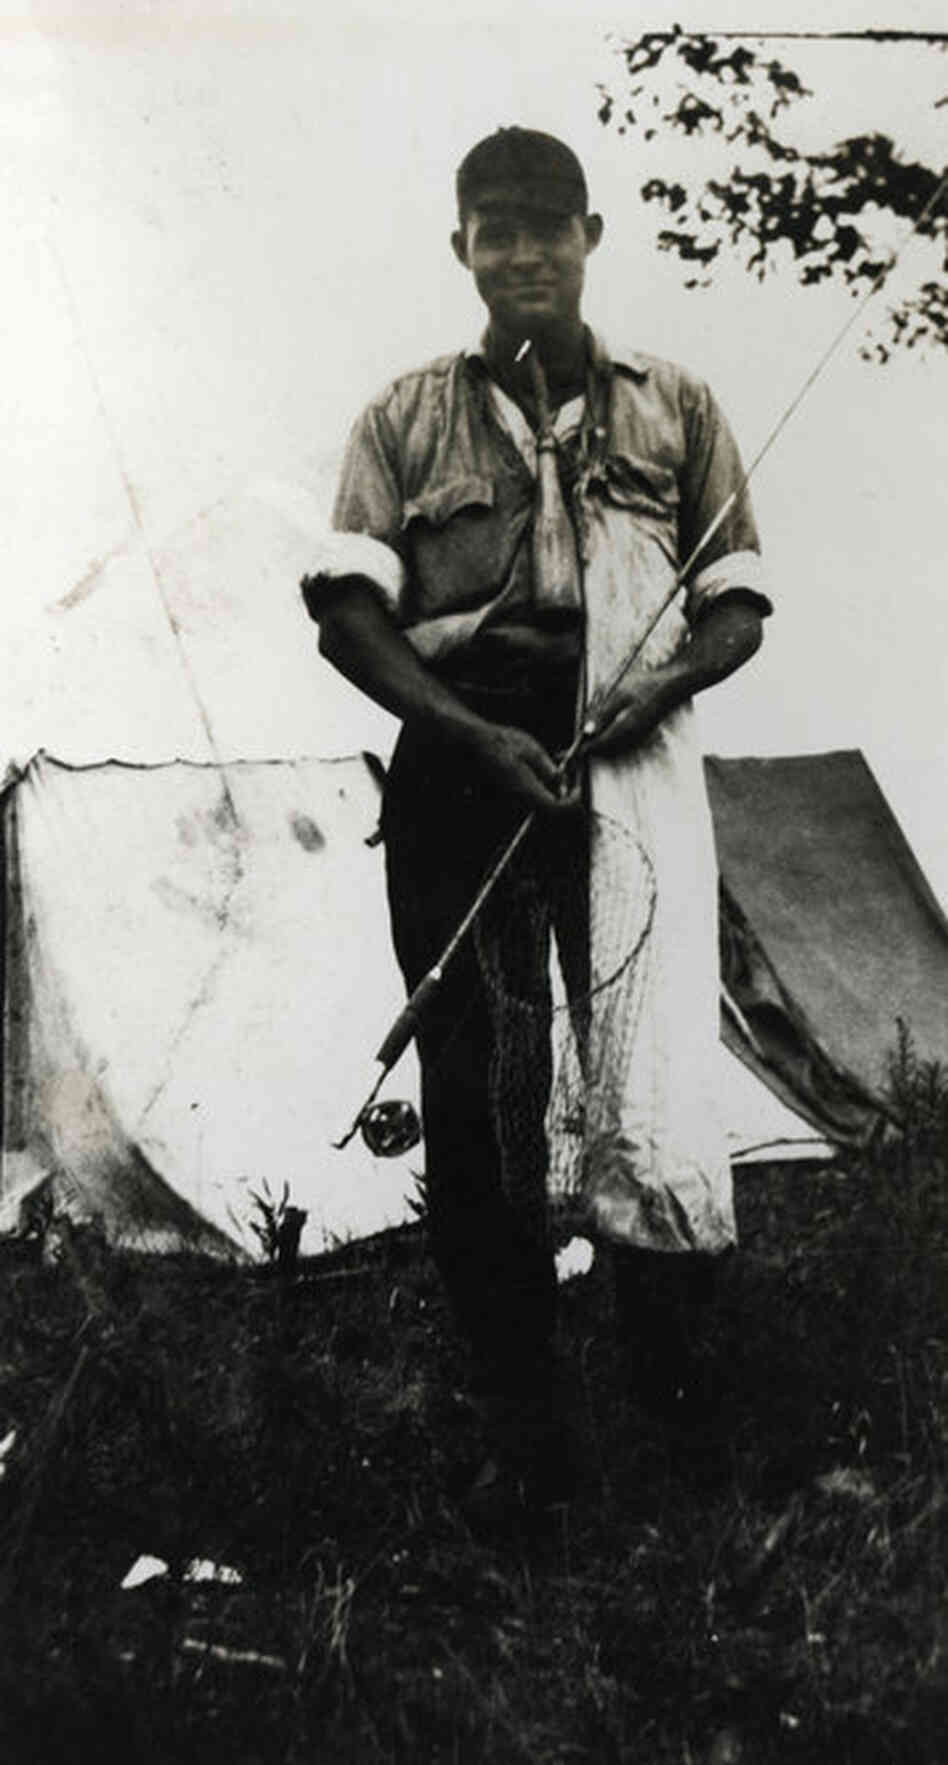 Ernest's fishing equipment closely resembles that of his fictional protagonist, Nick Adams — including the flour sack and bottle hanging around his neck for grasshoppers.